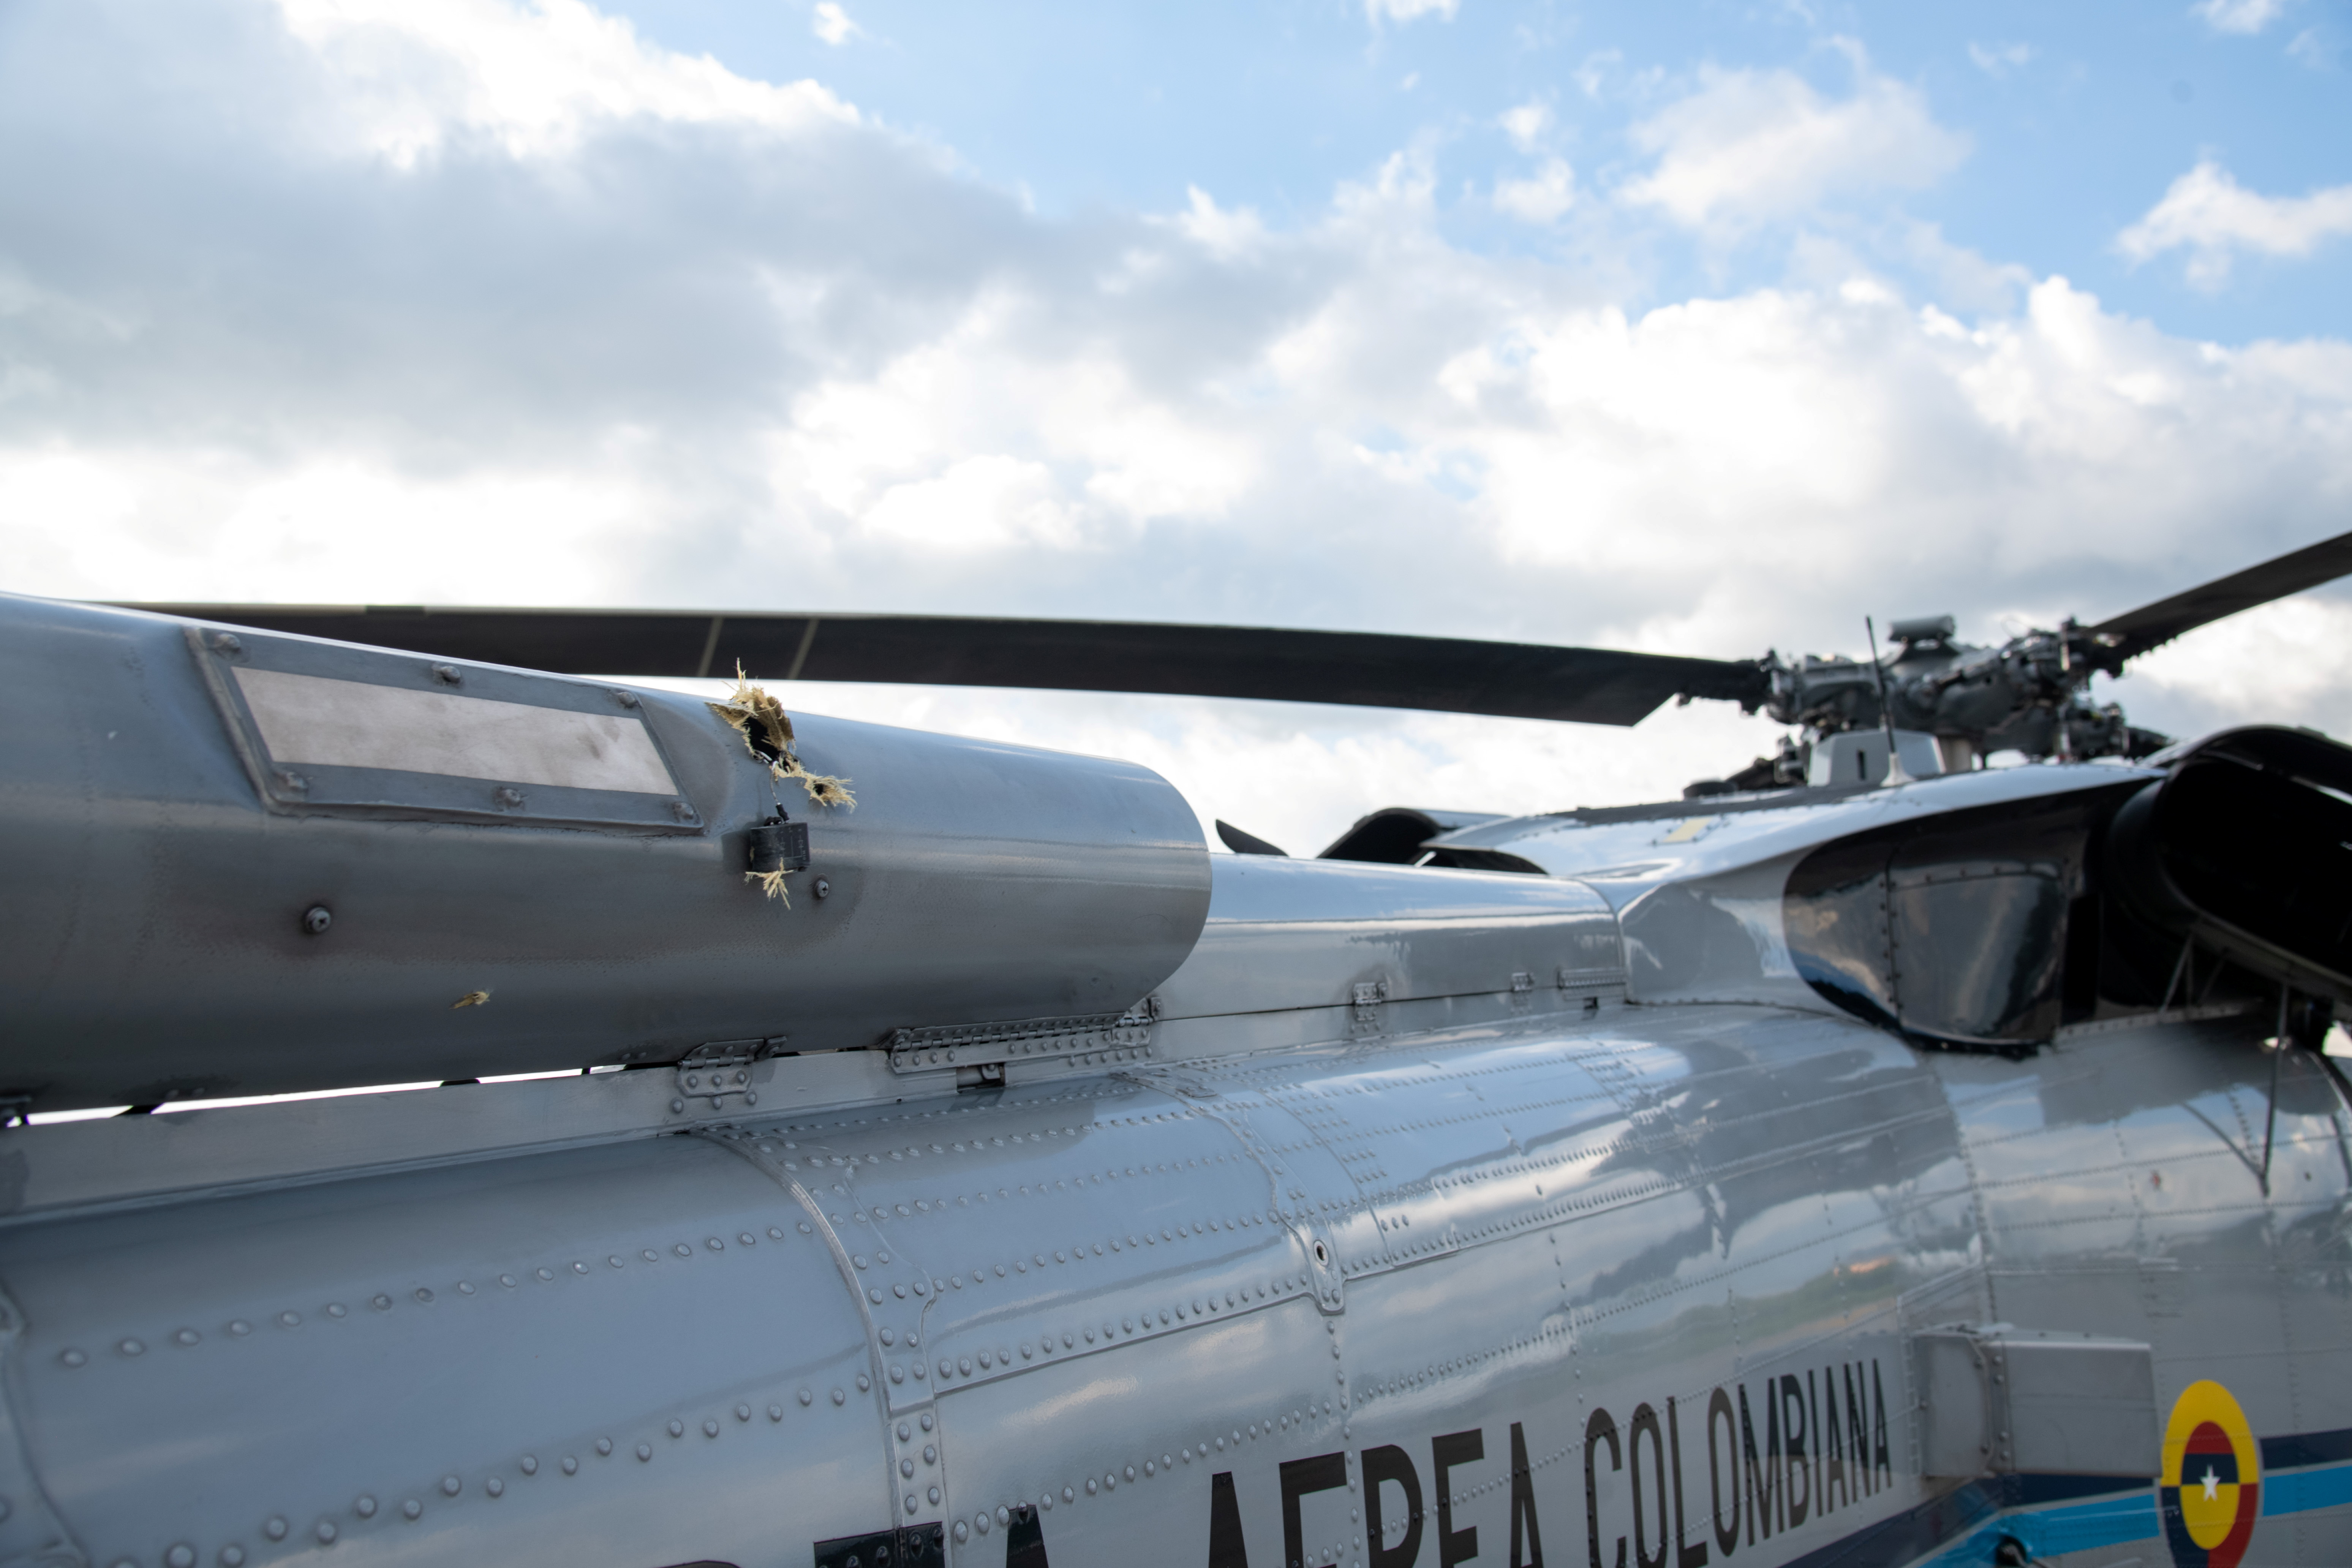 Colombia's President Ivan Duque's helicopter attacked